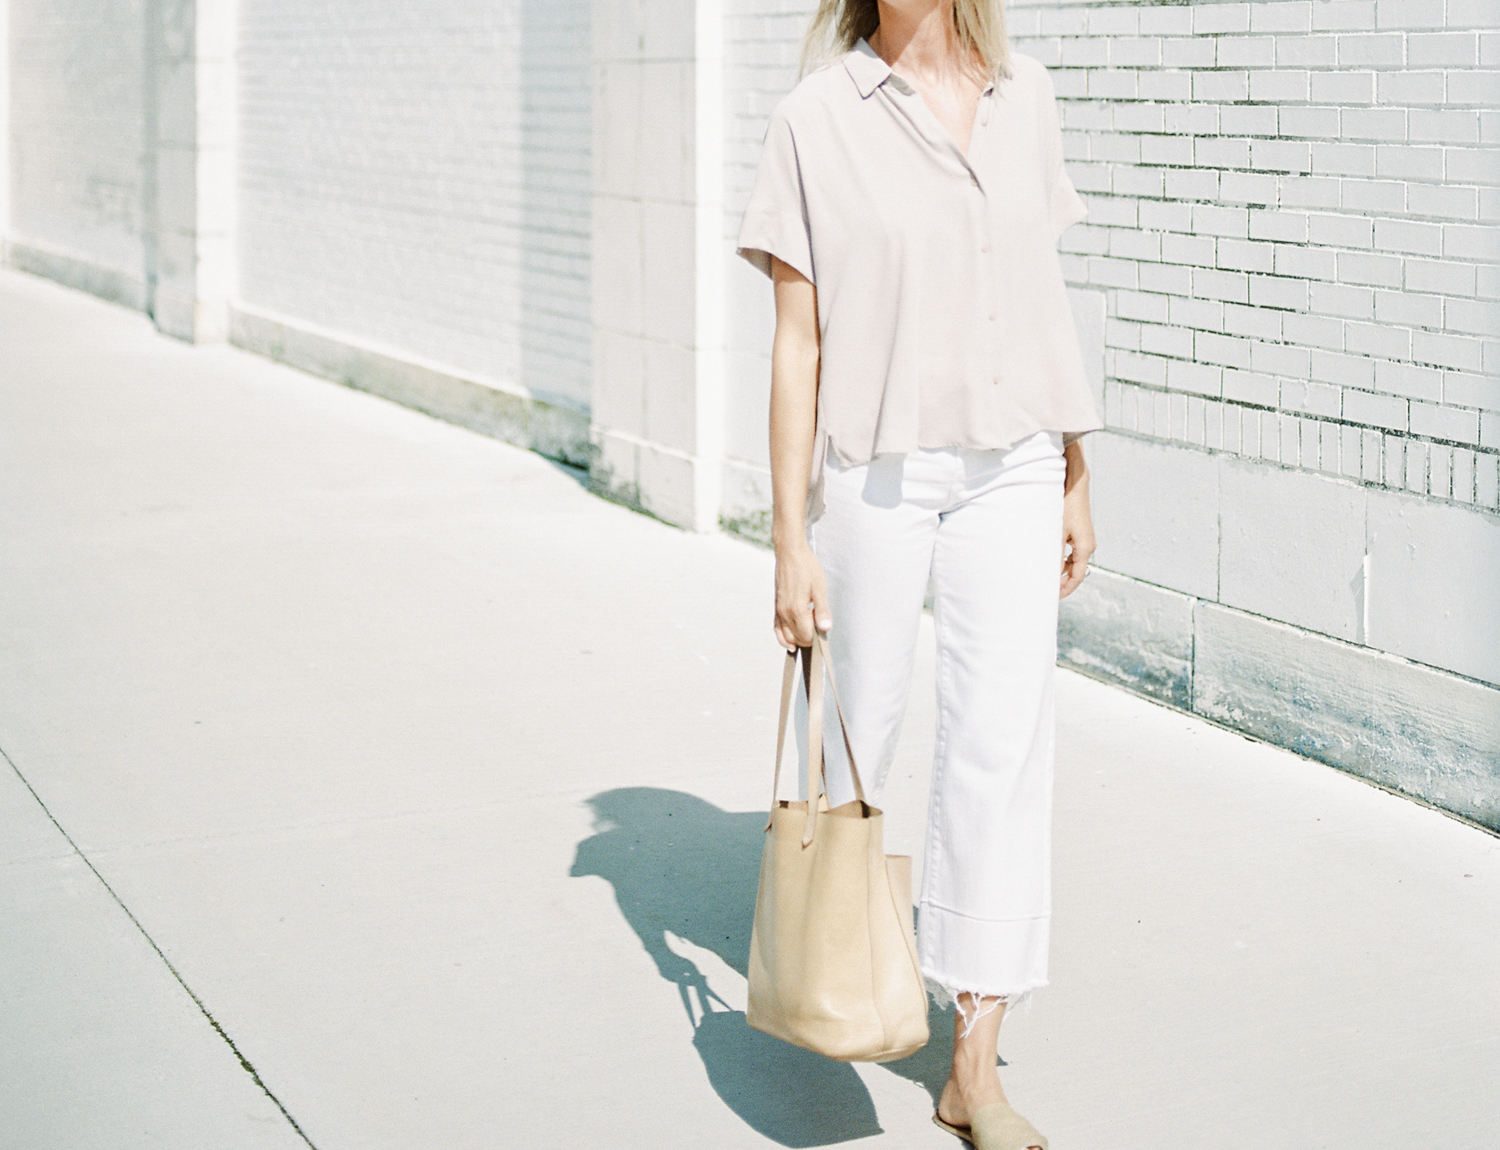 A Detroit female entrepreneur and brand designer carries a Madewell bag and walks downtown during her brand photos